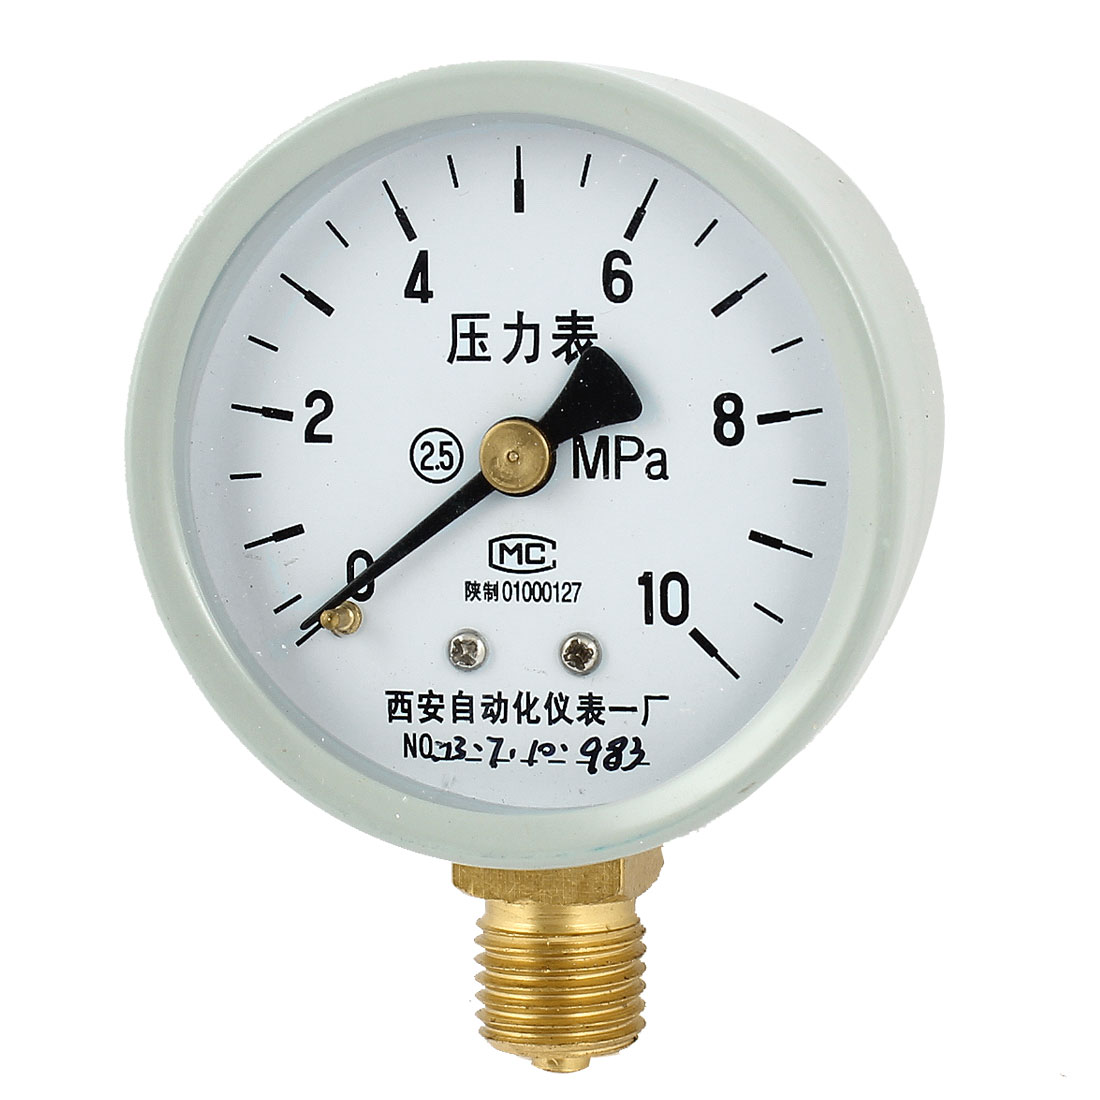 52mm Dial 1/4PT Male Threaded 0-10Mpa Pneumatic Air Pressure Measuring Gauge